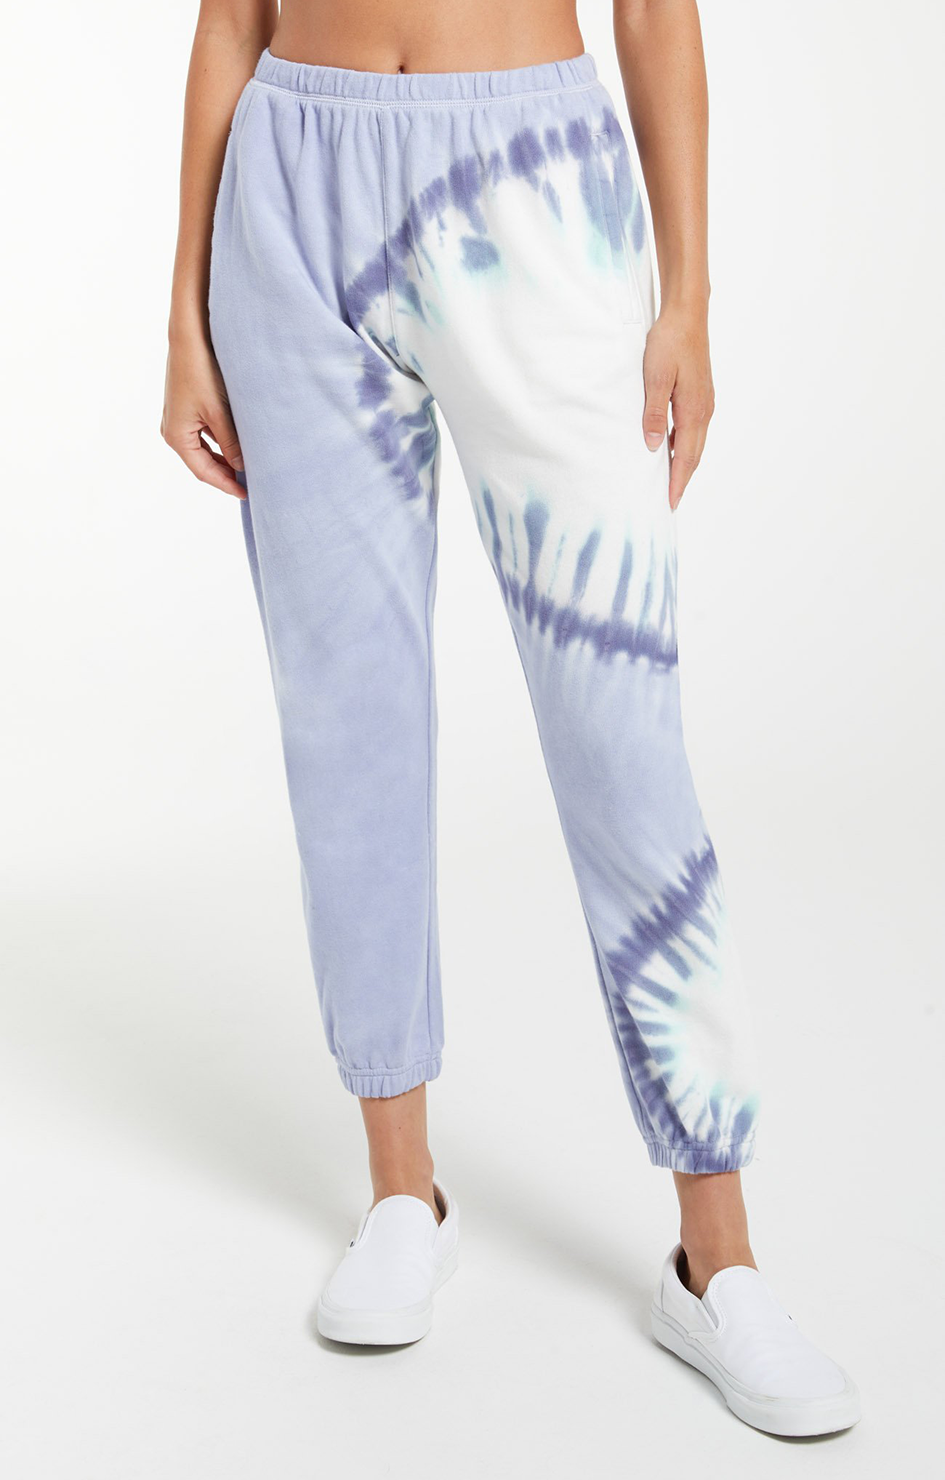 Sunburst Tie Dye Jogger - Ice Blue